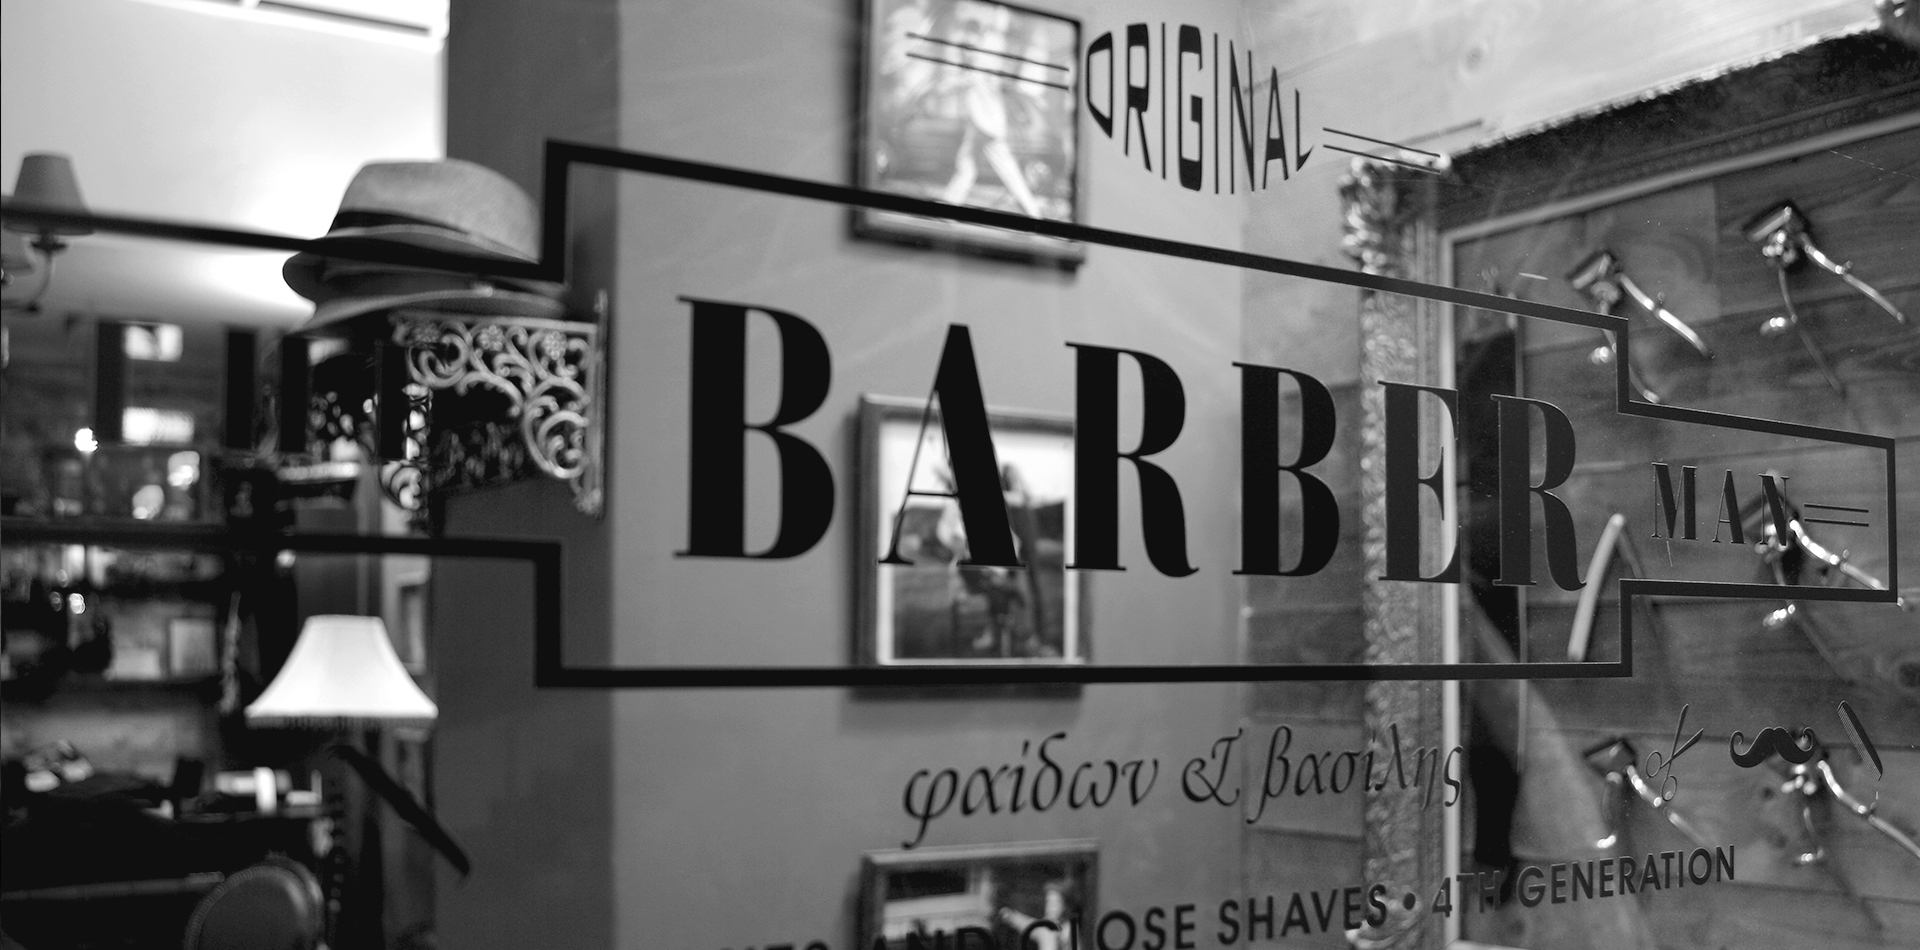 THE BARBER MAN